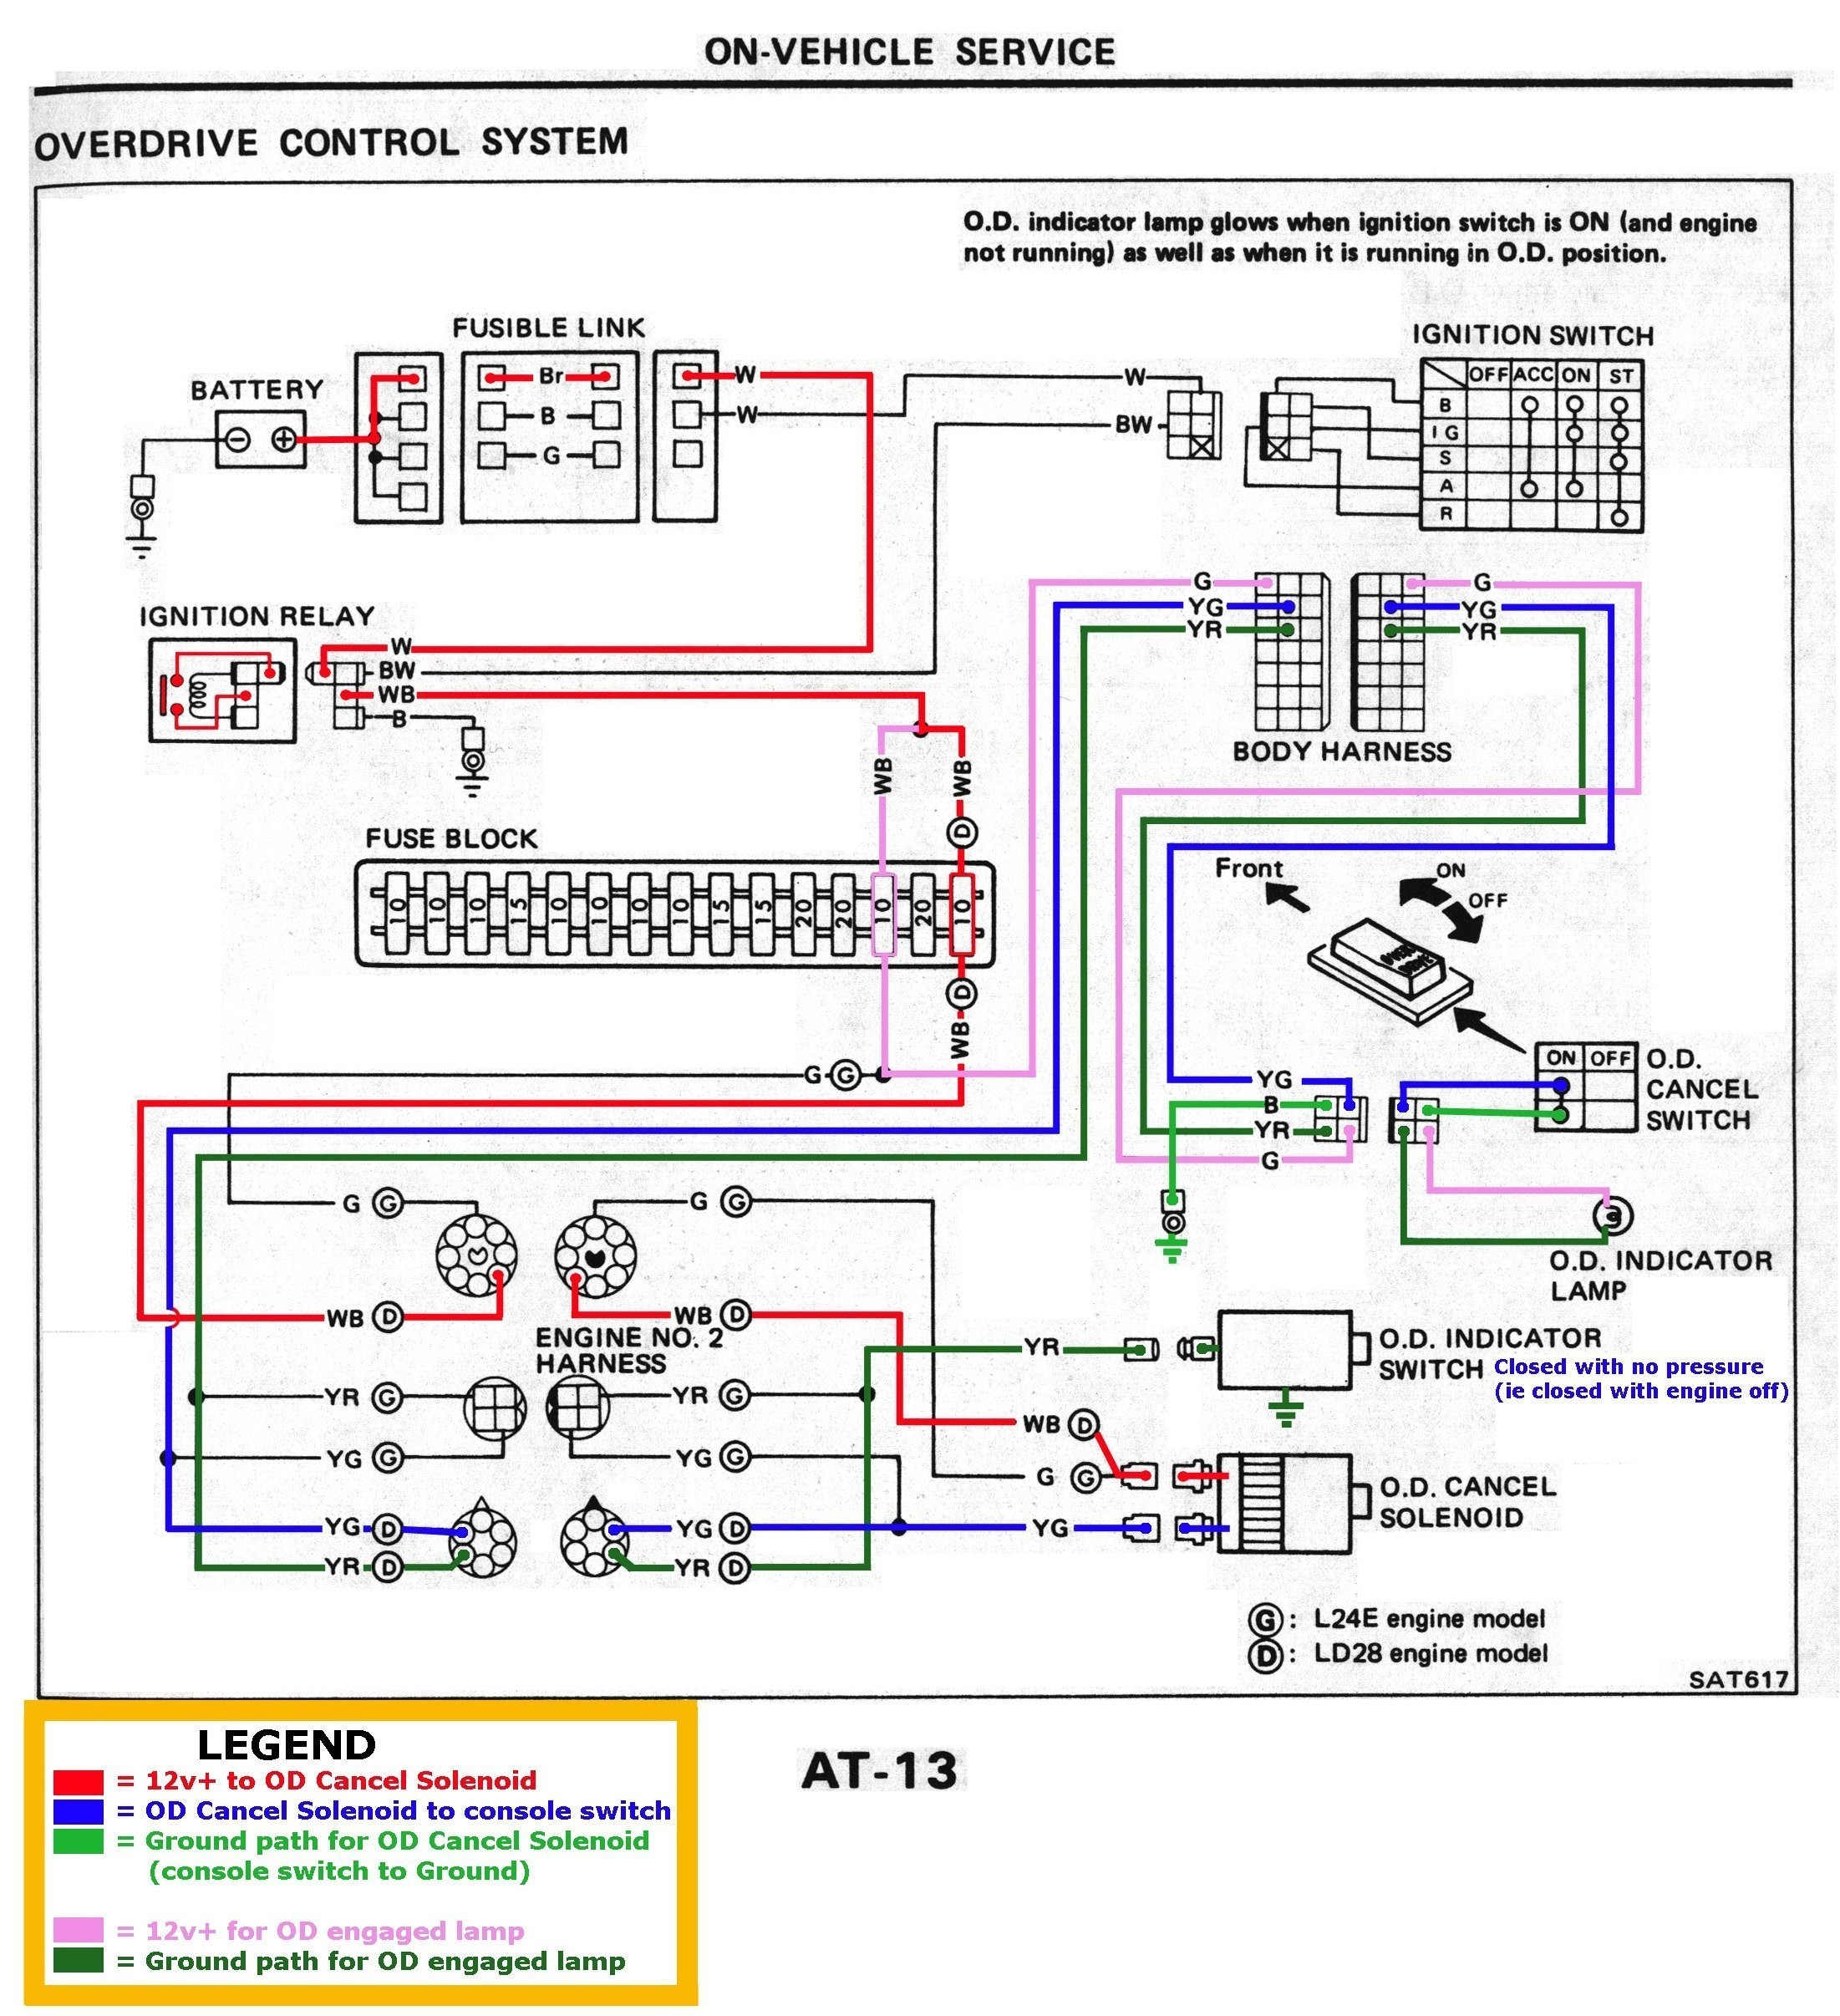 Predator 420cc Key Switch Wiring Diagram No 7085] Bosch Universal Alternator Wiring Diagram Schematic Of Predator 420cc Key Switch Wiring Diagram